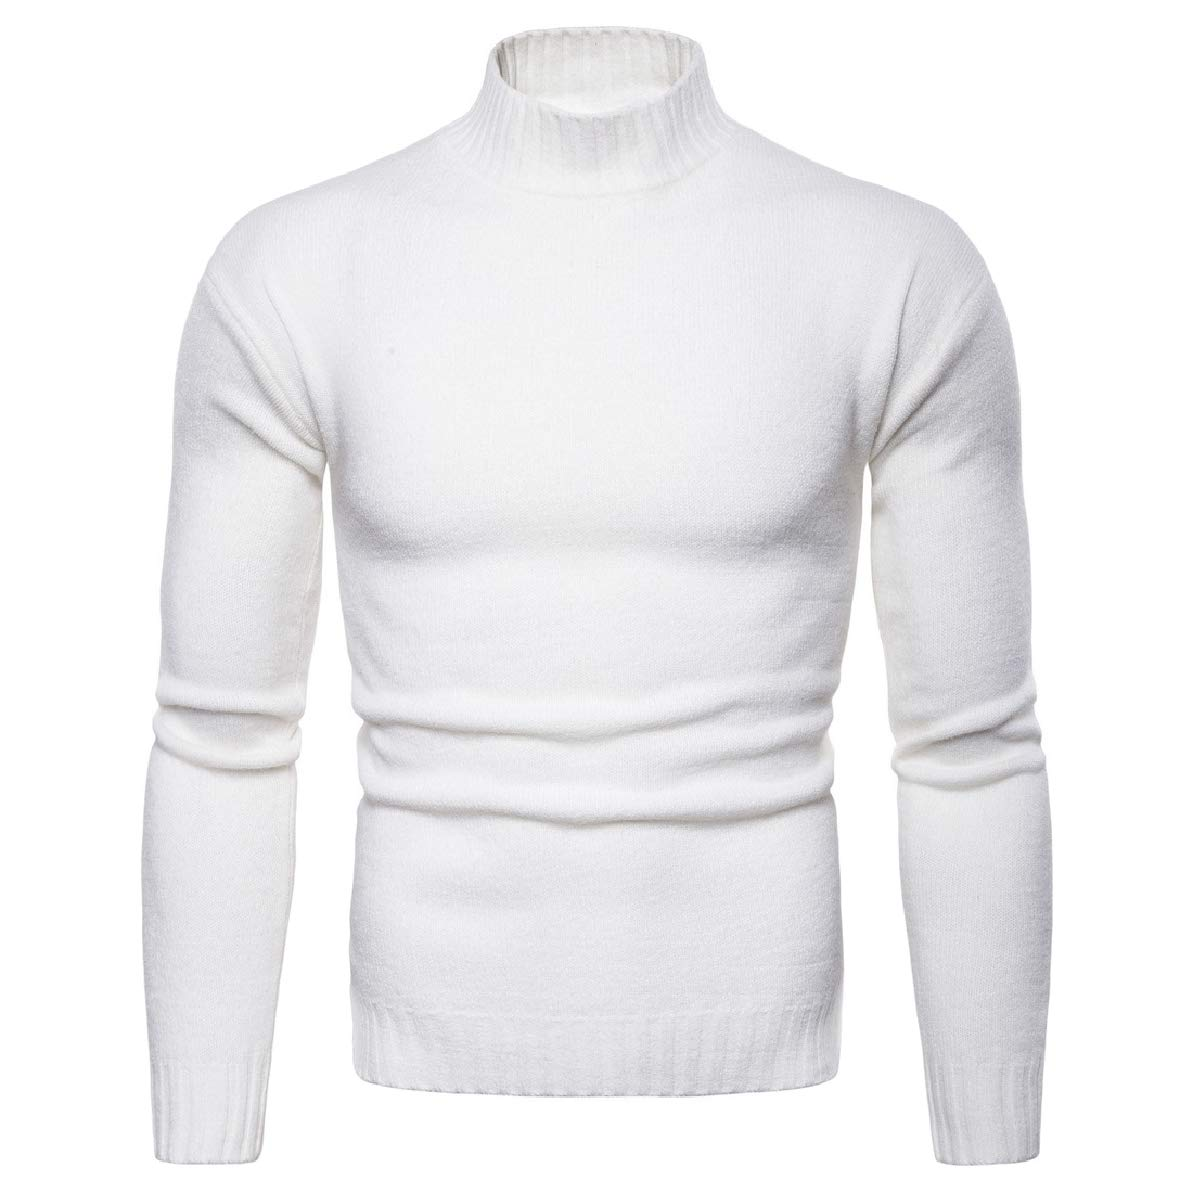 Zimaes-Men Solid Long Sleeve Trim-Fit Turtleneck Knitted Sweater Pullover